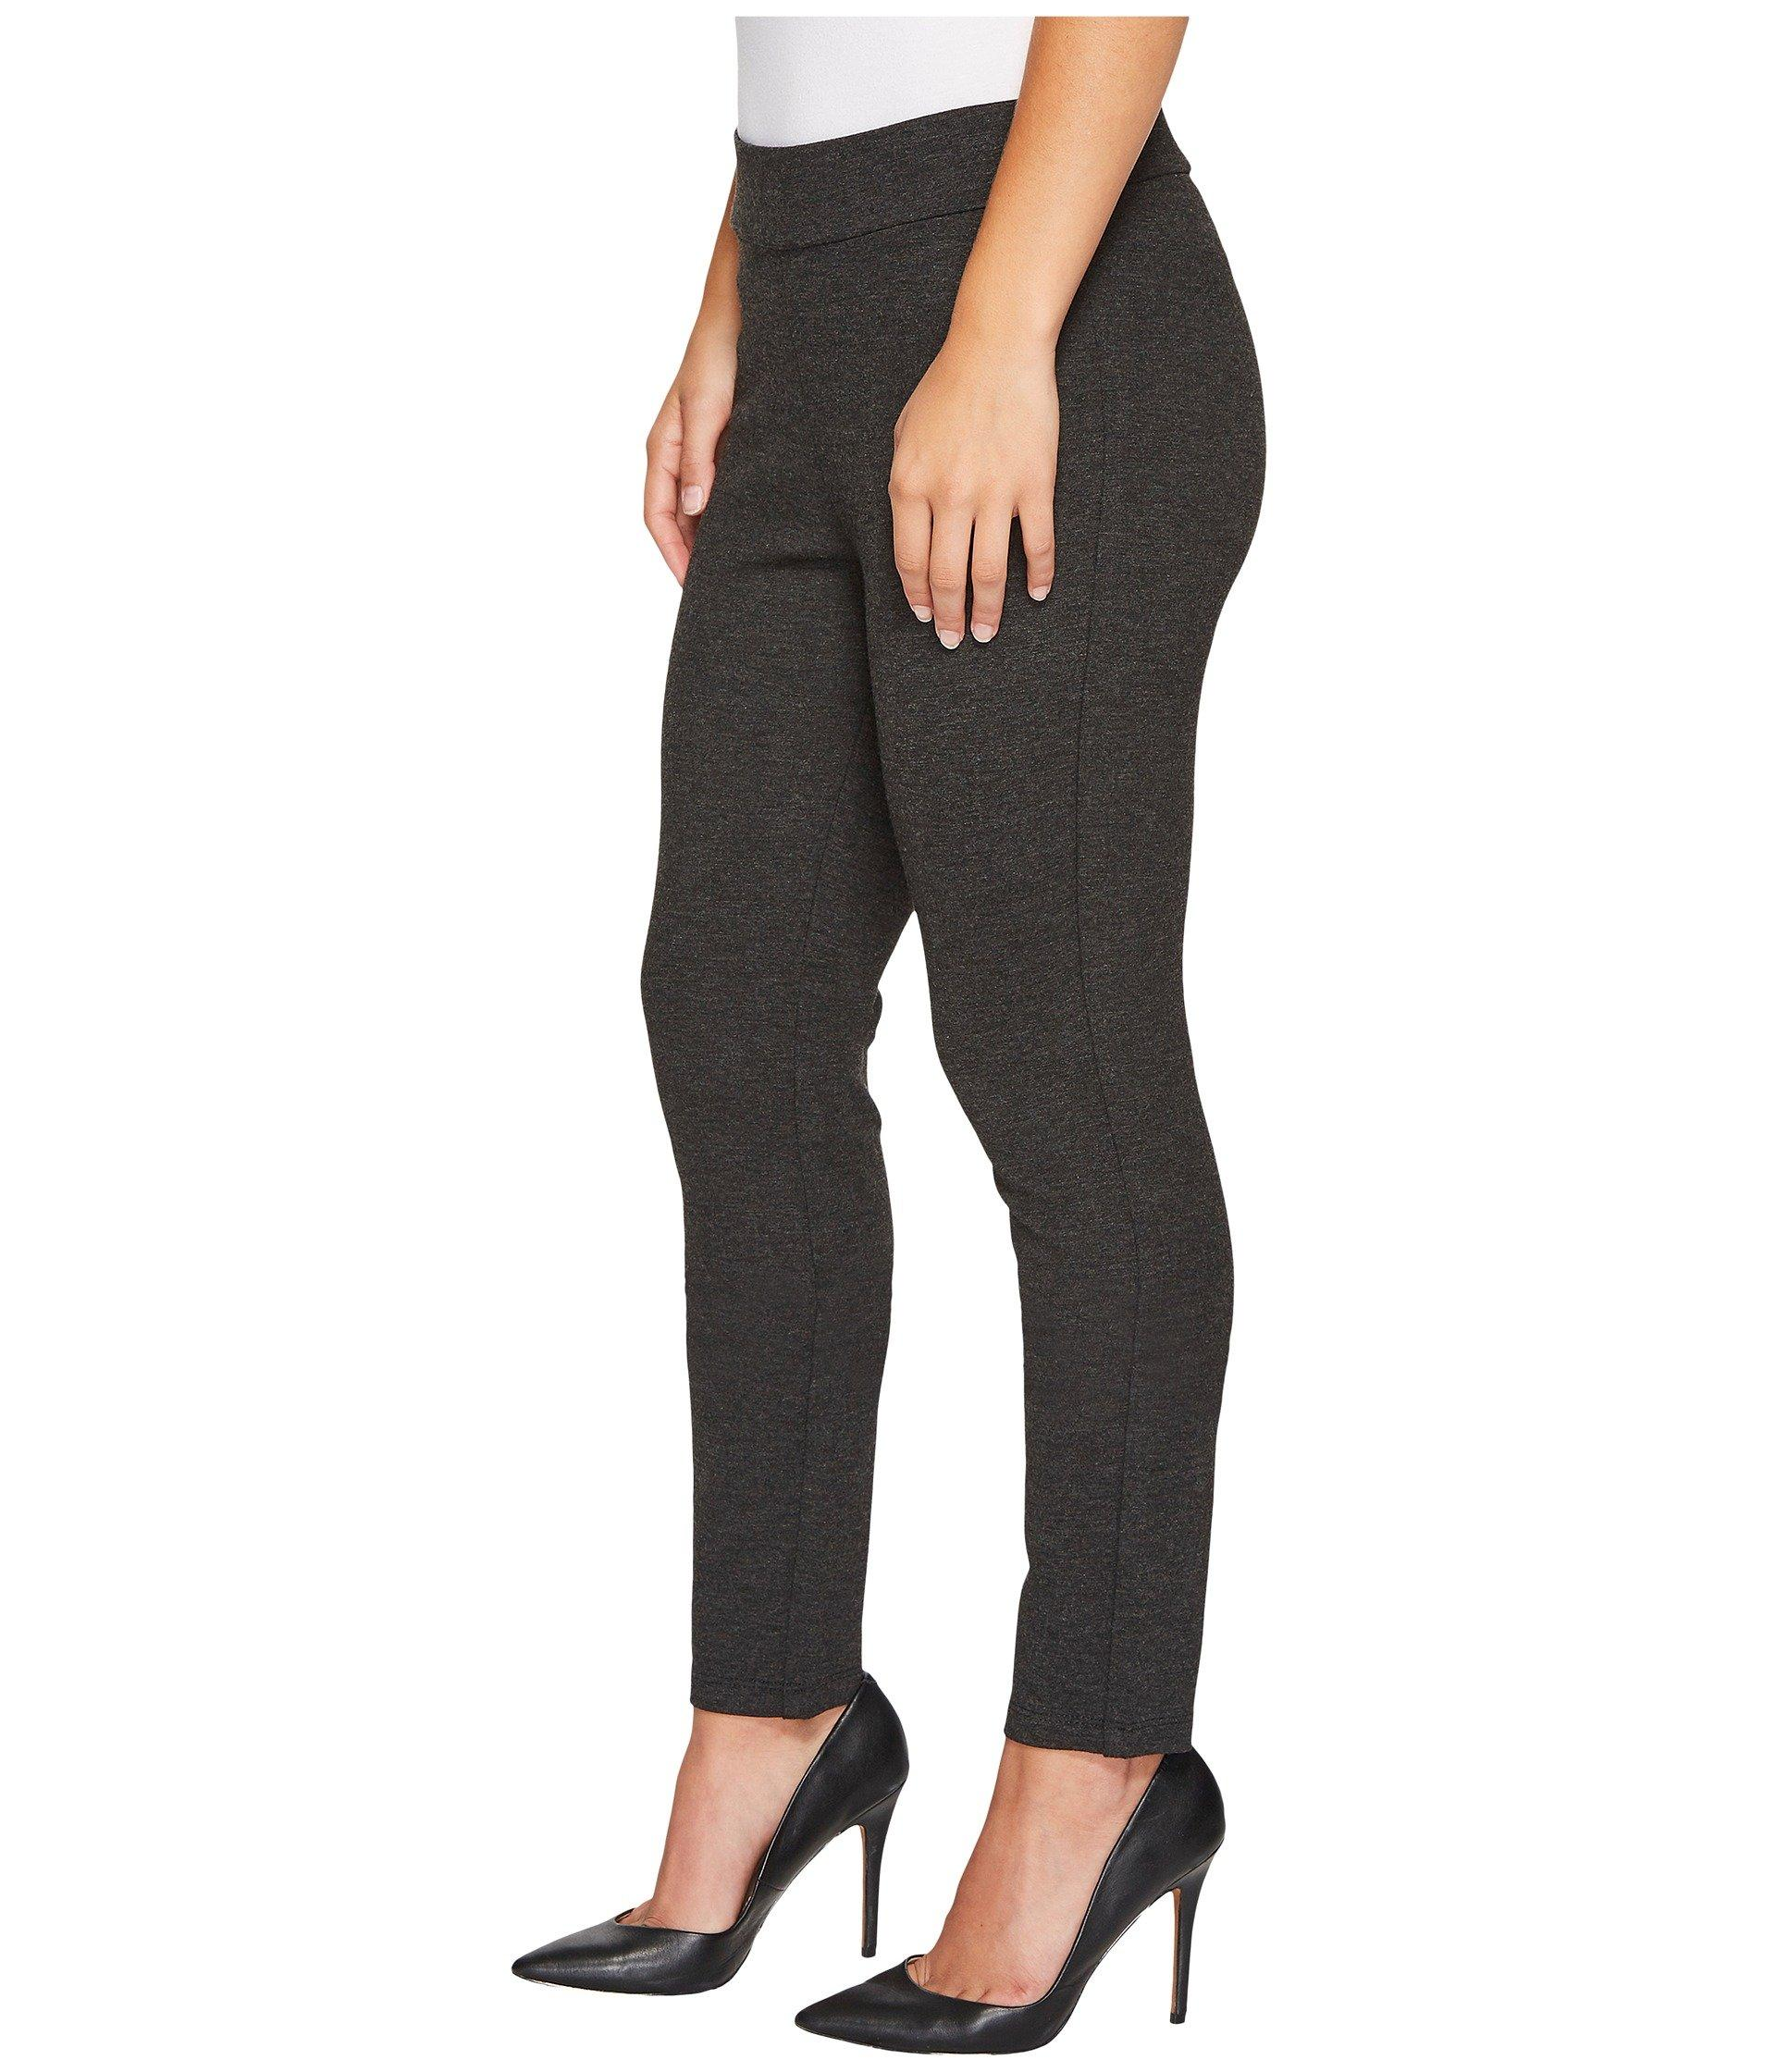 7debce7a89be2 Lyst - NYDJ Petite Basic Ponte Leggings In Charcoal (charcoal) Women's Jeans  in Gray - Save 7%